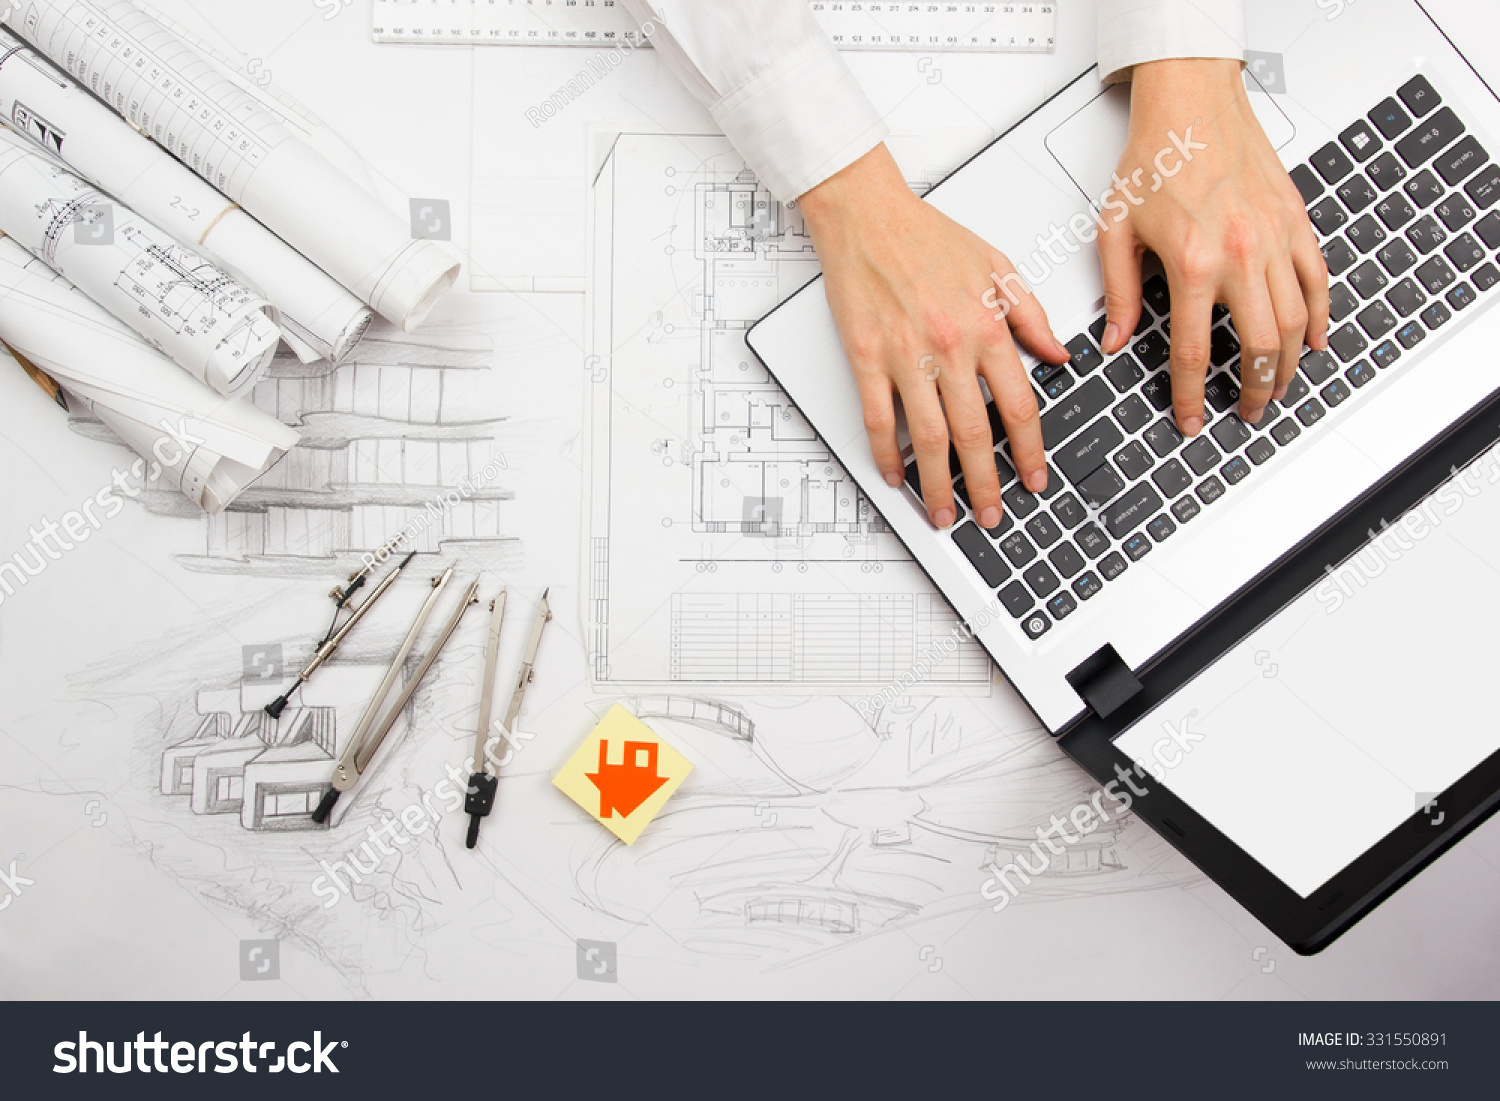 Architect working on blueprint architects workplace stock for Blueprint estimator